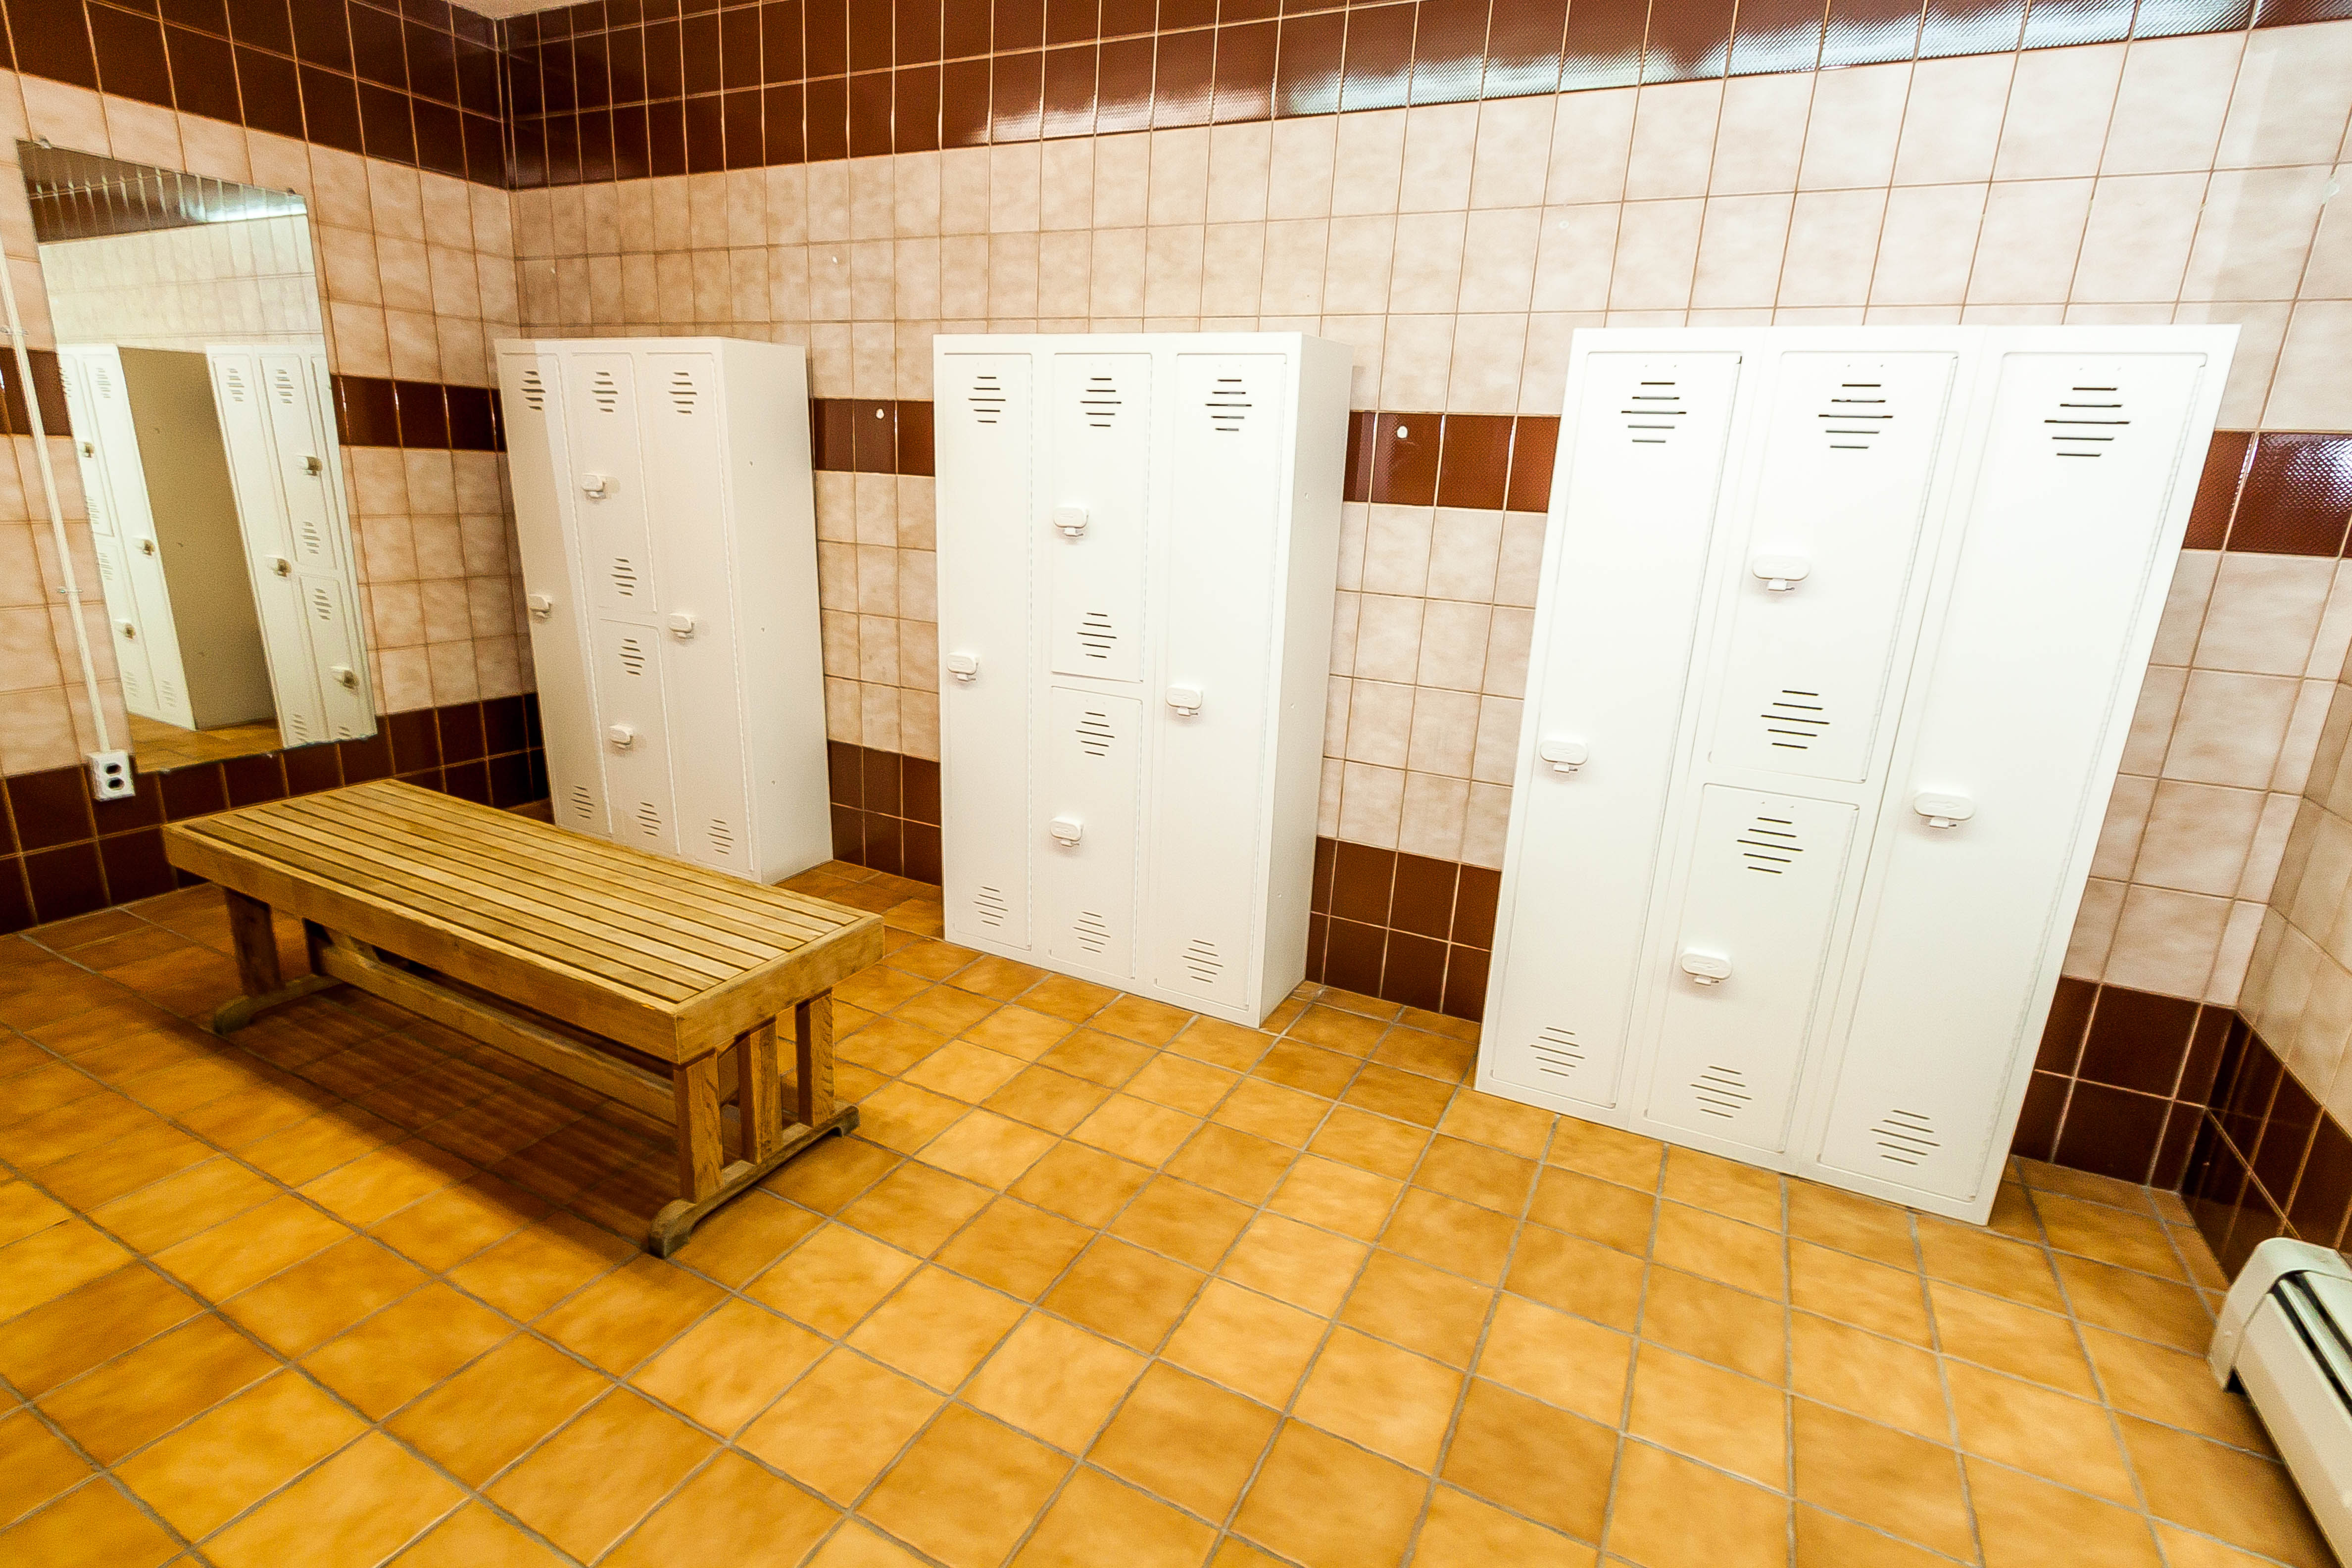 There are restrooms, changing rooms and showers in the clubhouse.